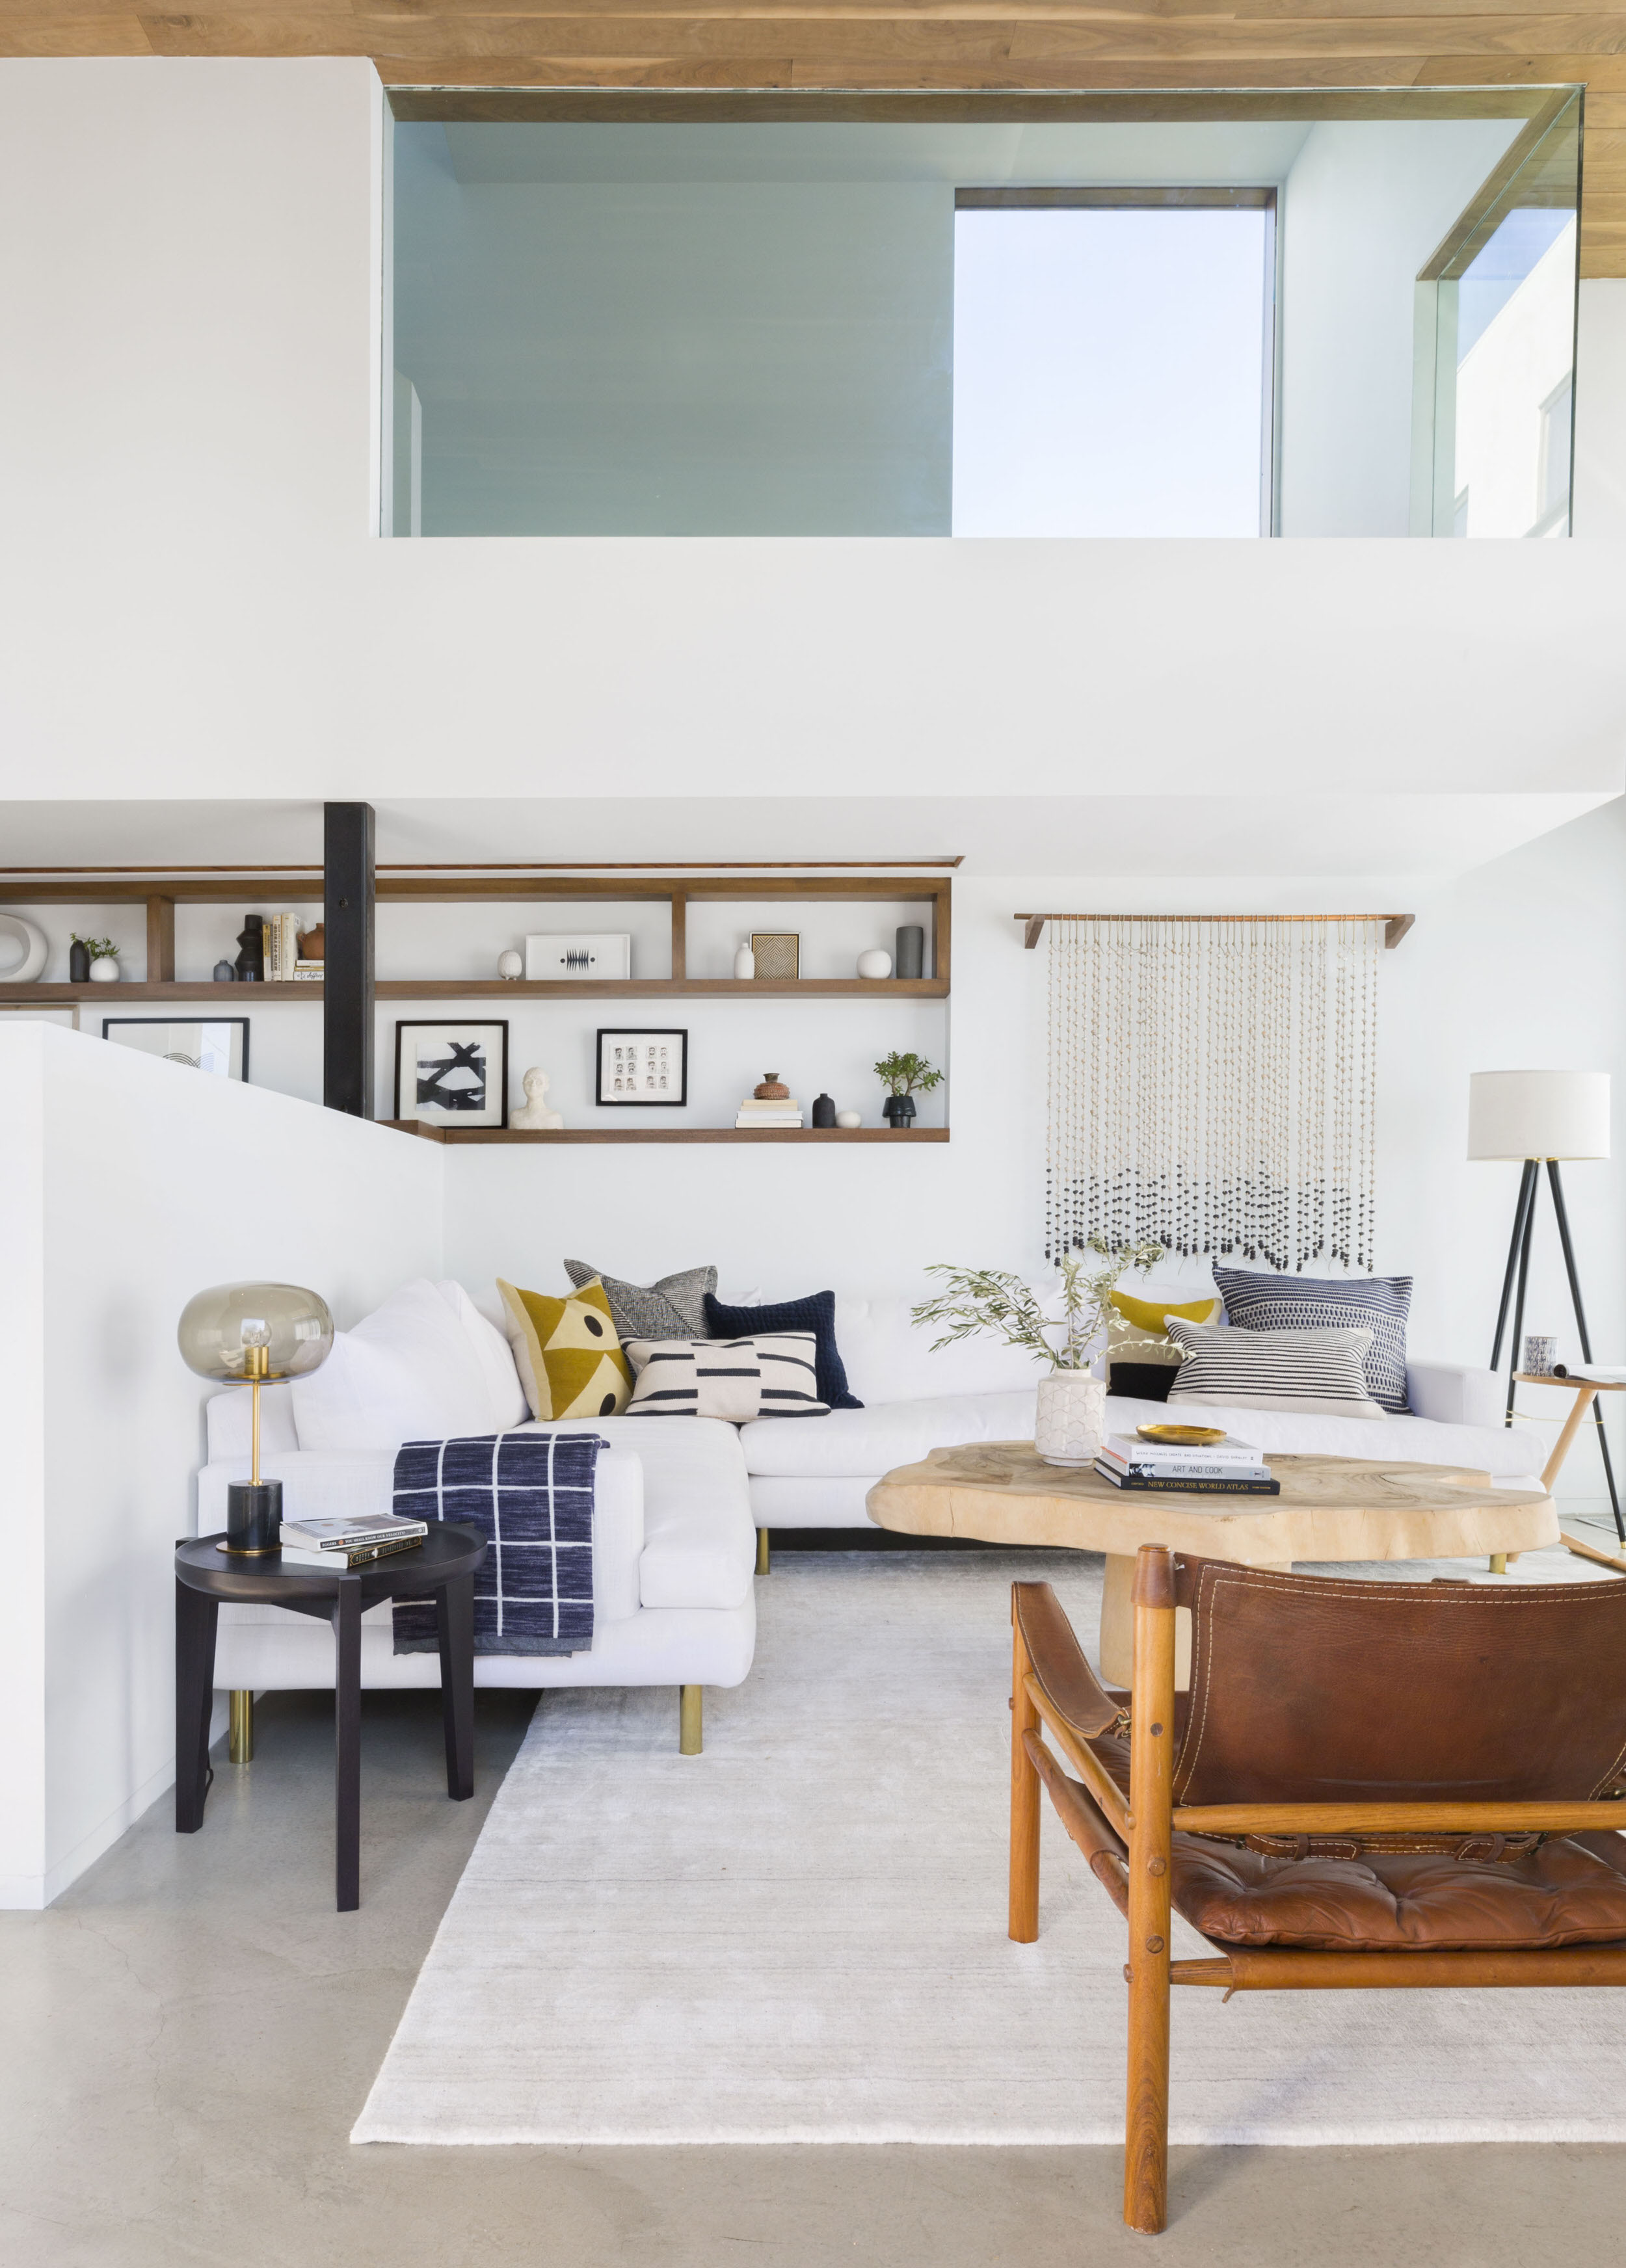 9 Modern Home Interior Design Ideas to Steal for Your Next Makeover